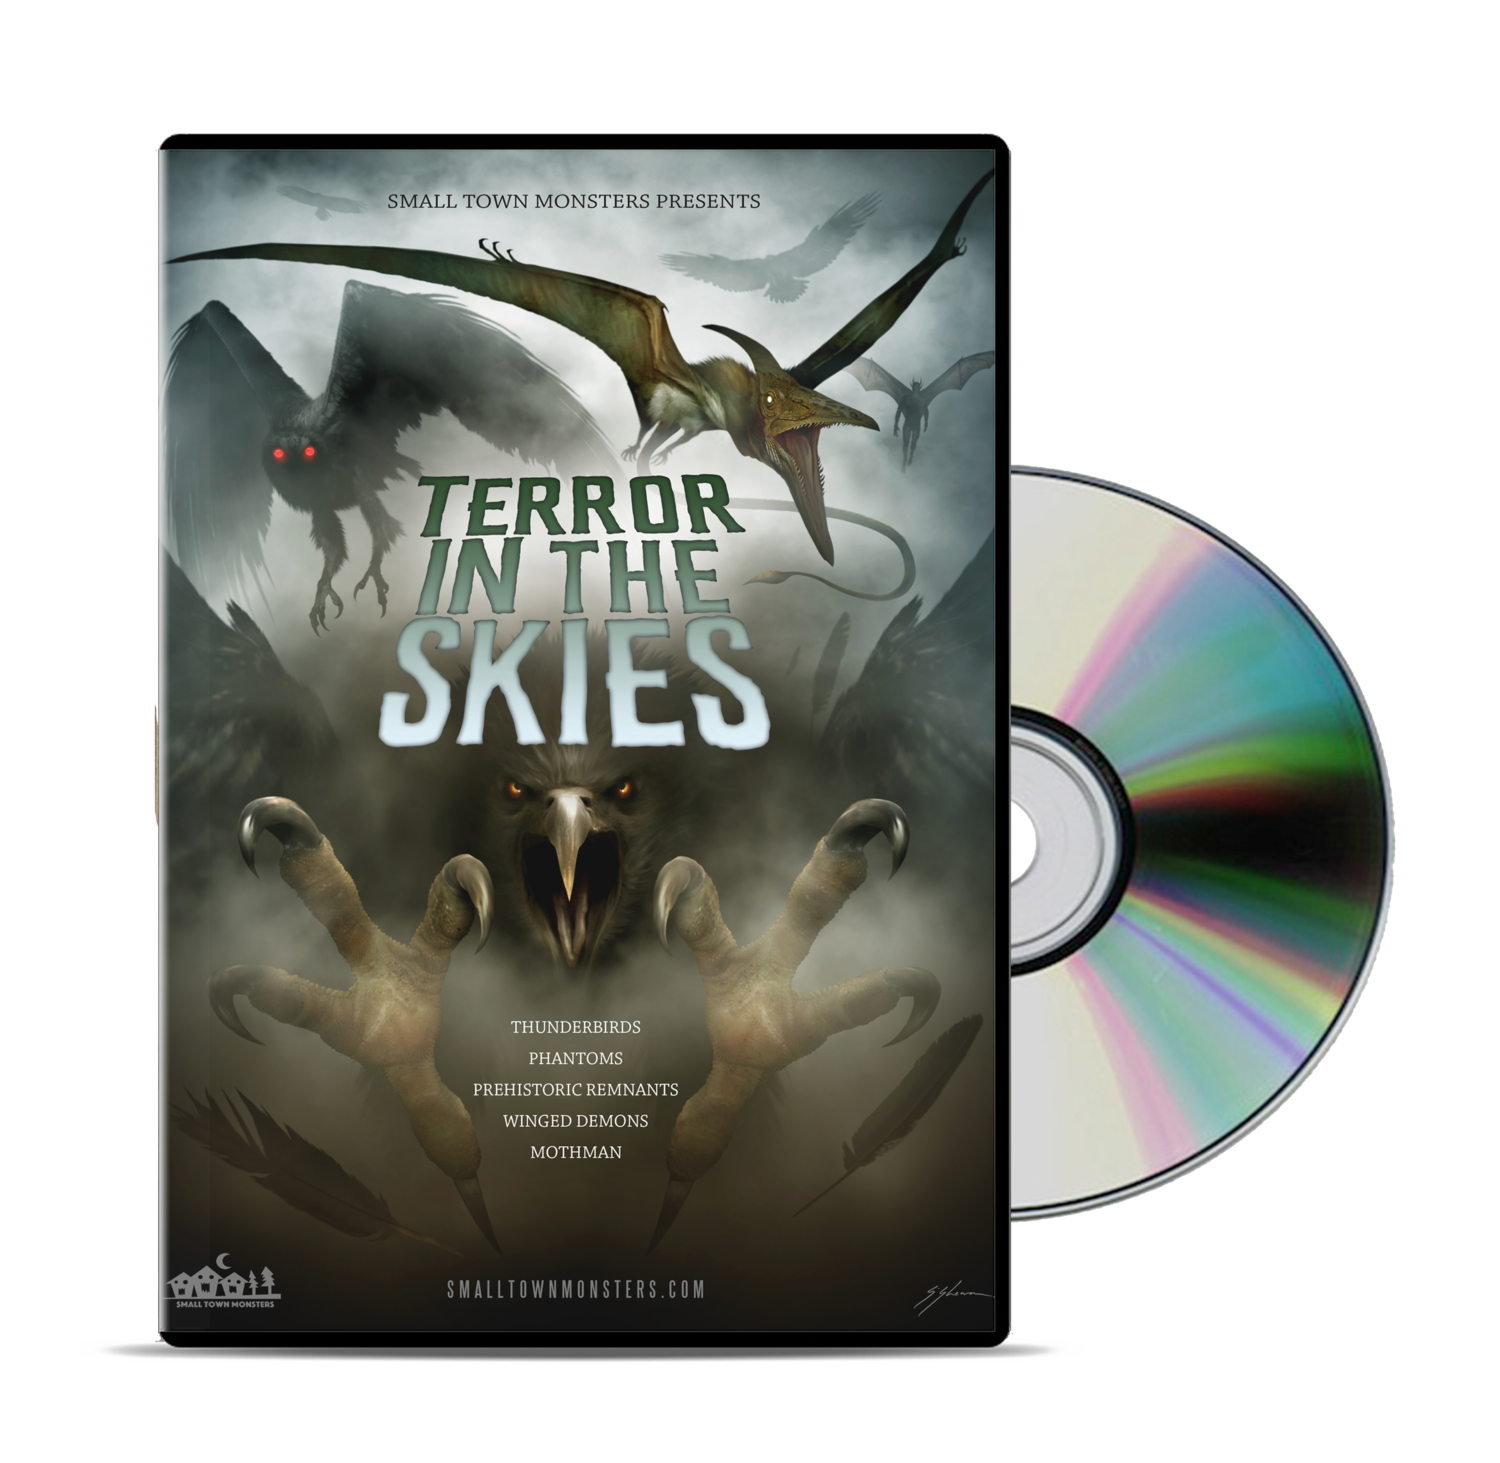 Terror in the Skies DVD — Small Town Monsters